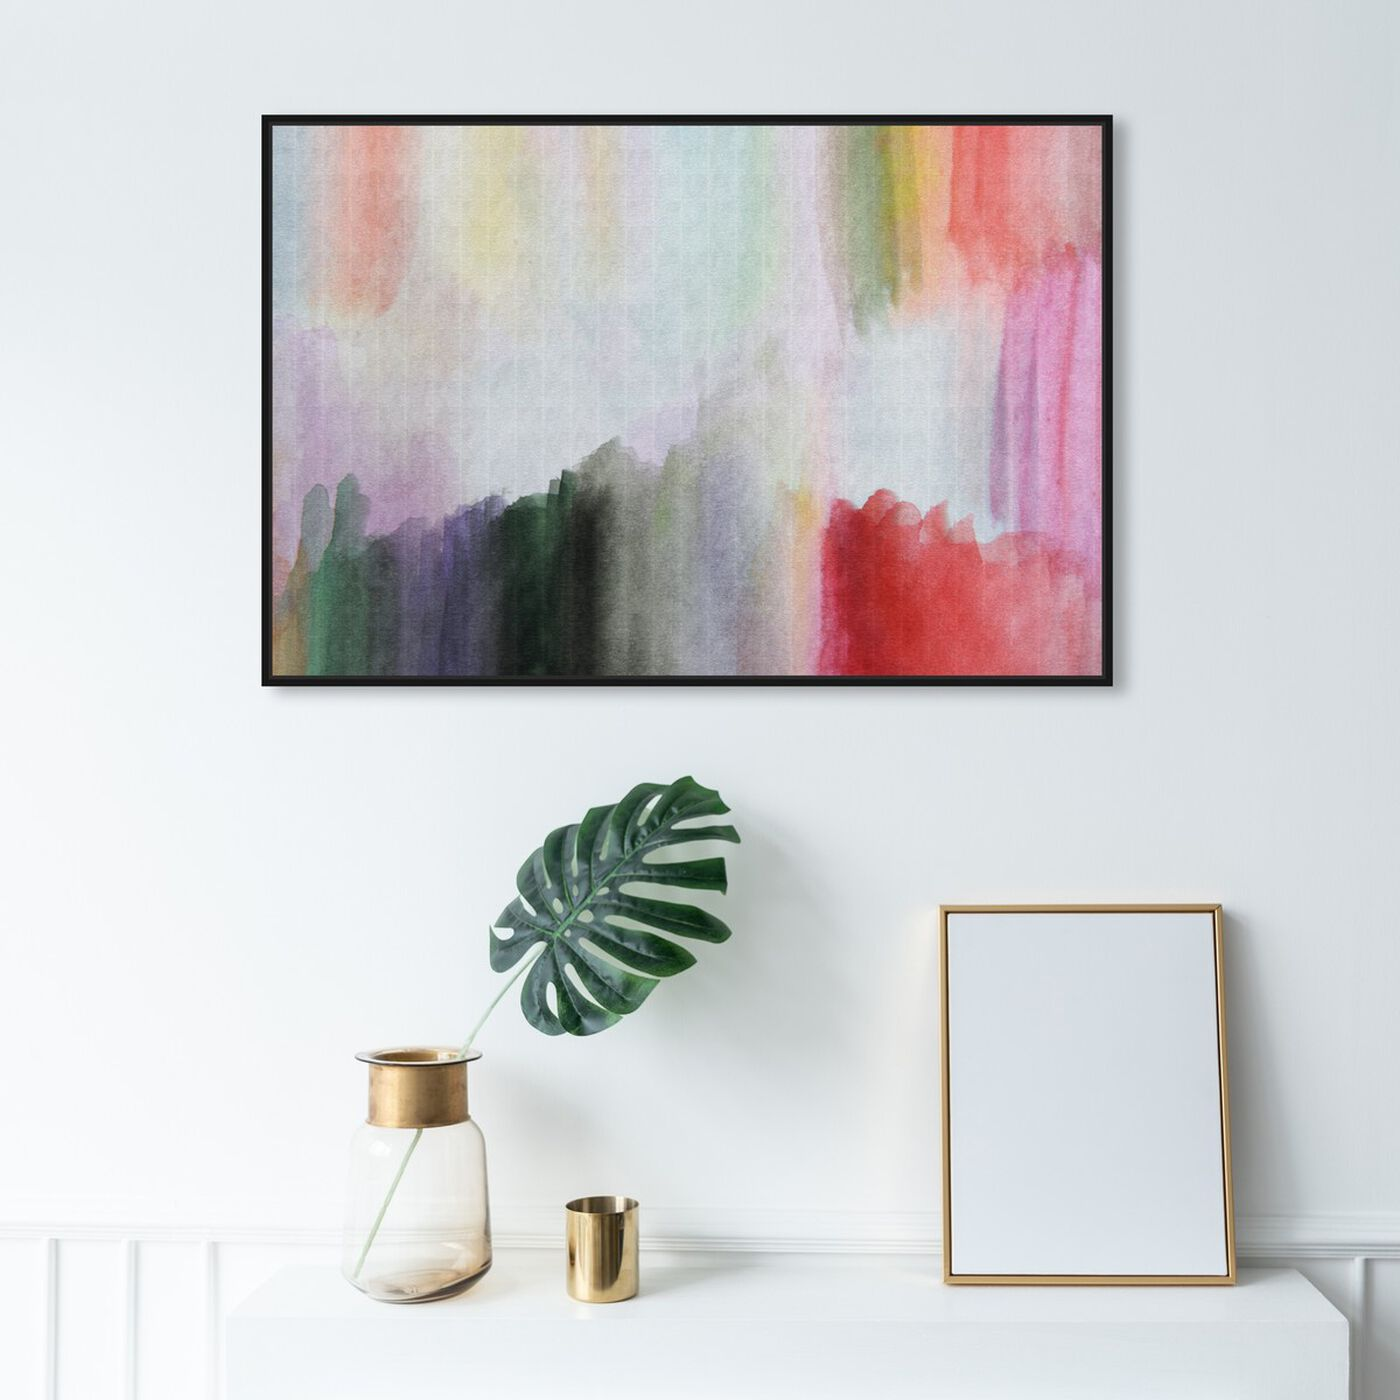 Hanging view of Anona featuring abstract and watercolor art.